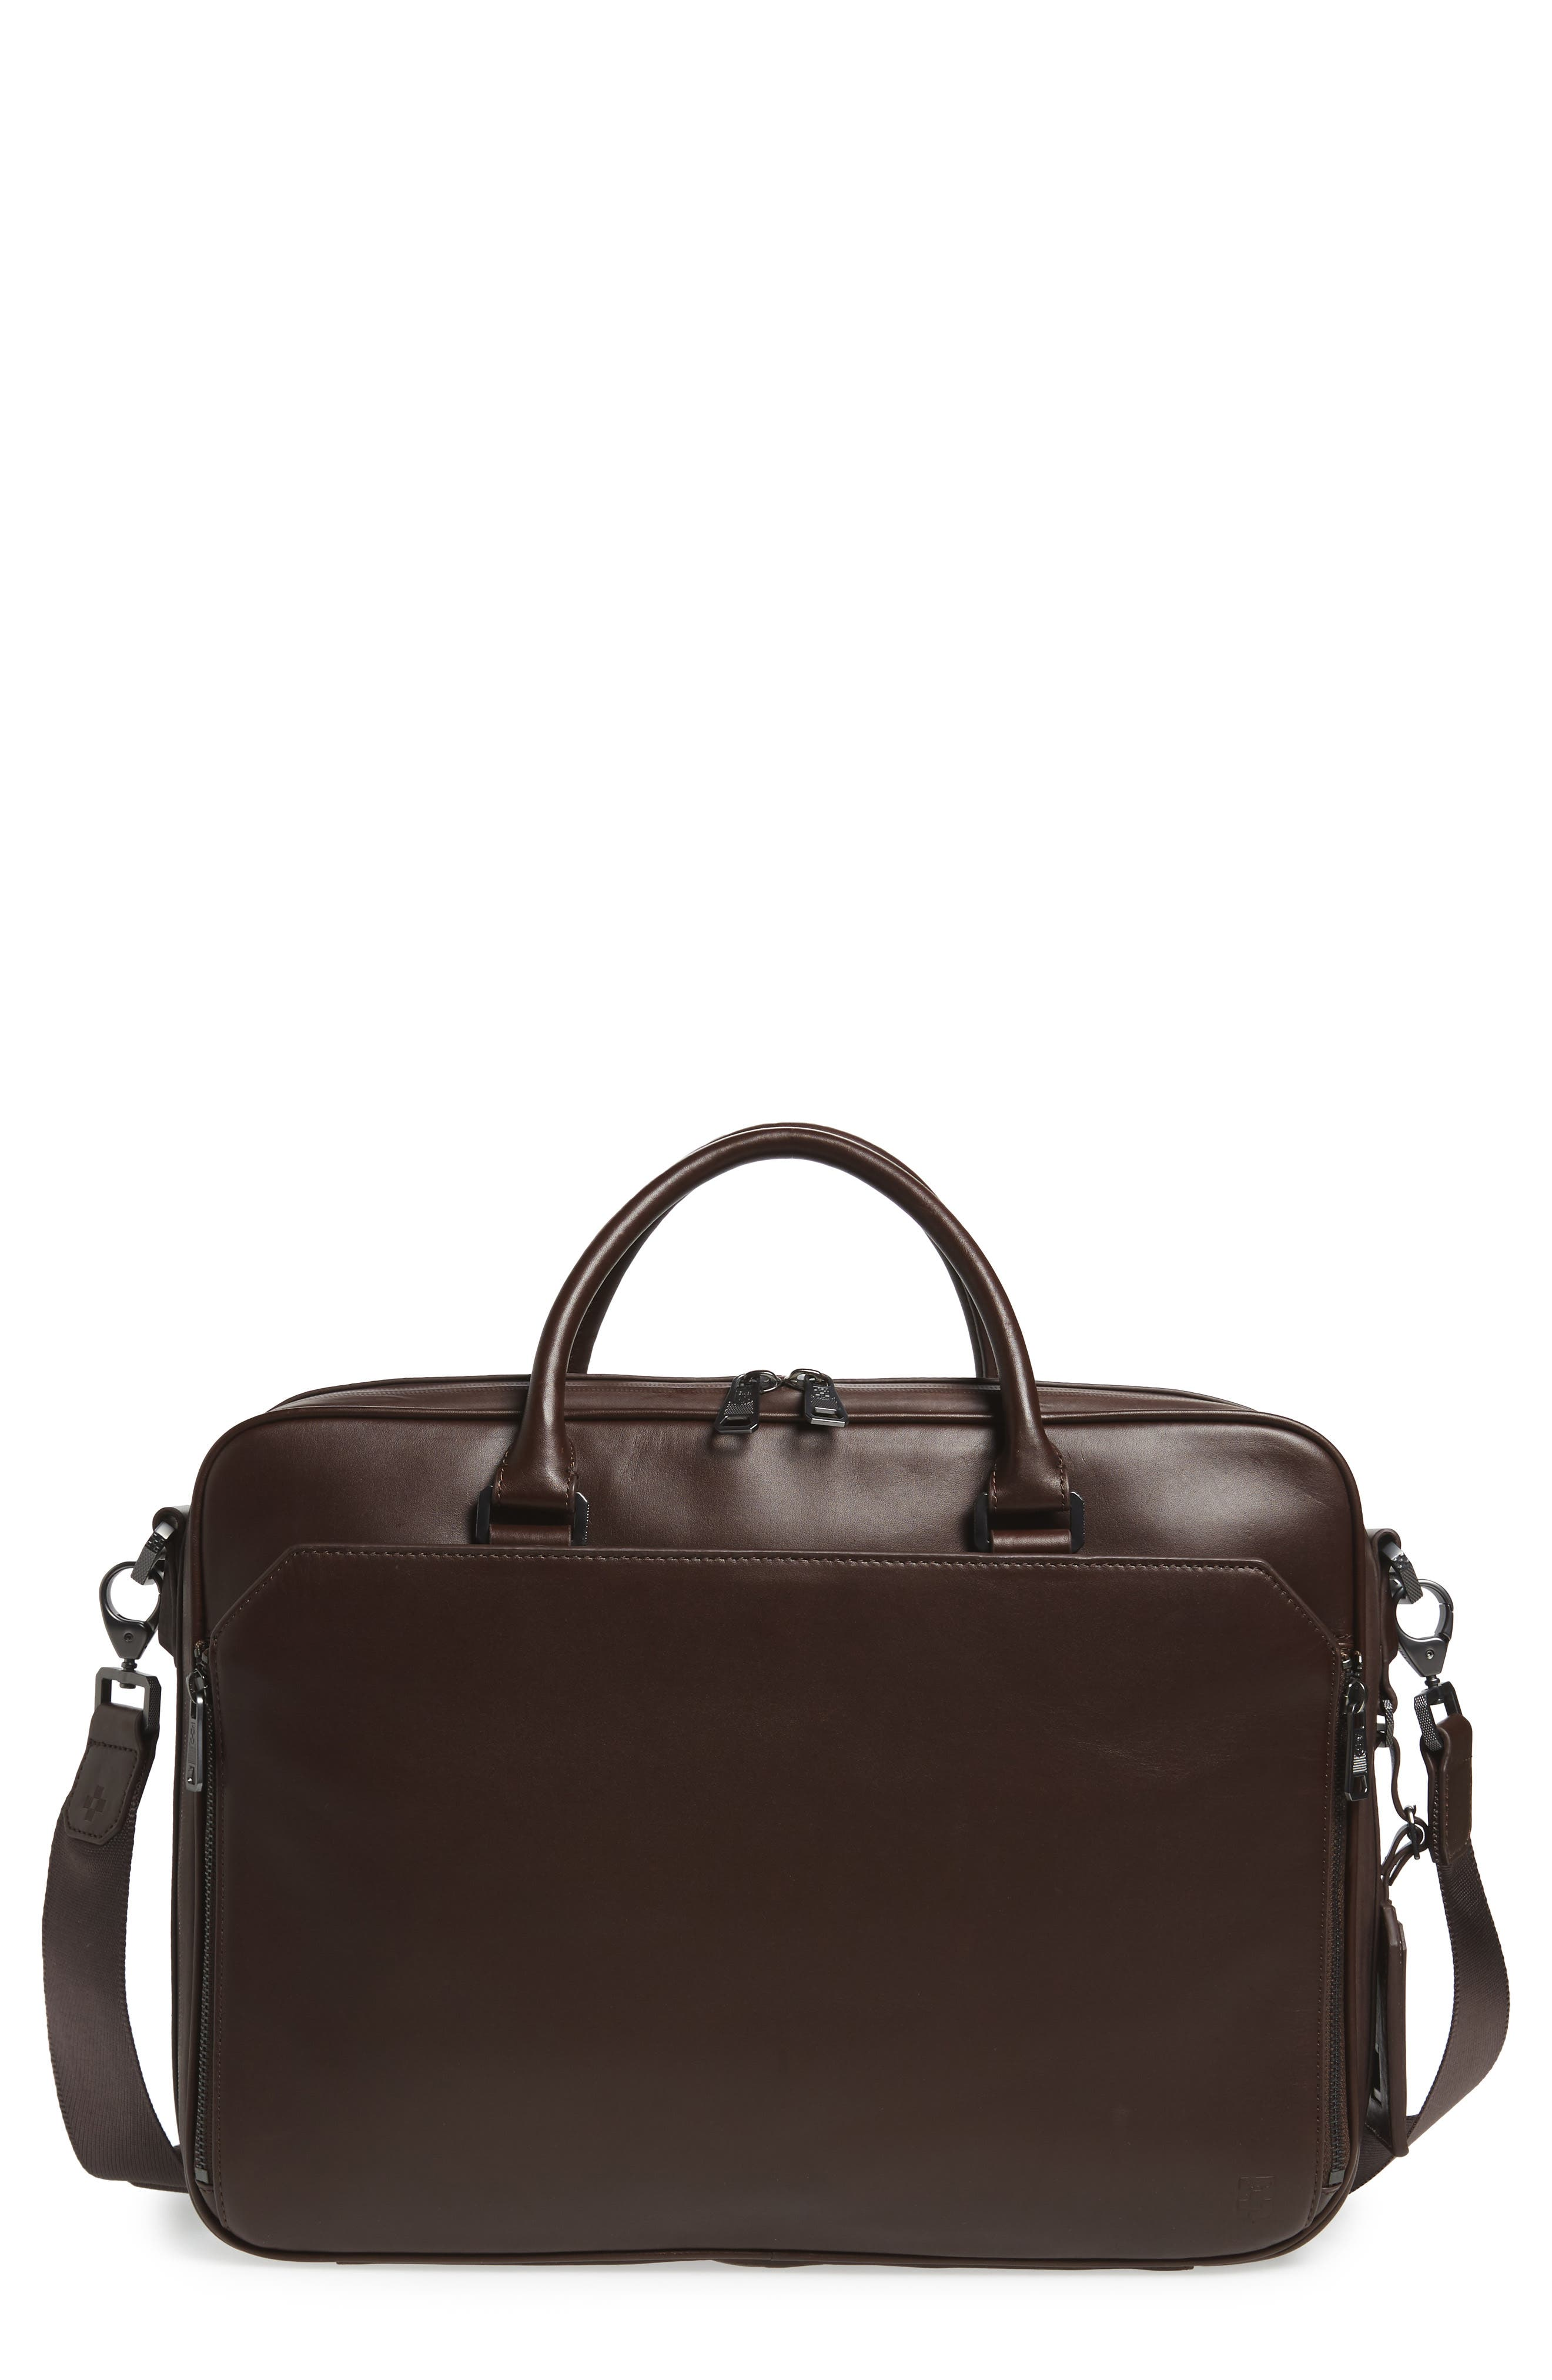 Vince Camuto Turin Leather Briefcase